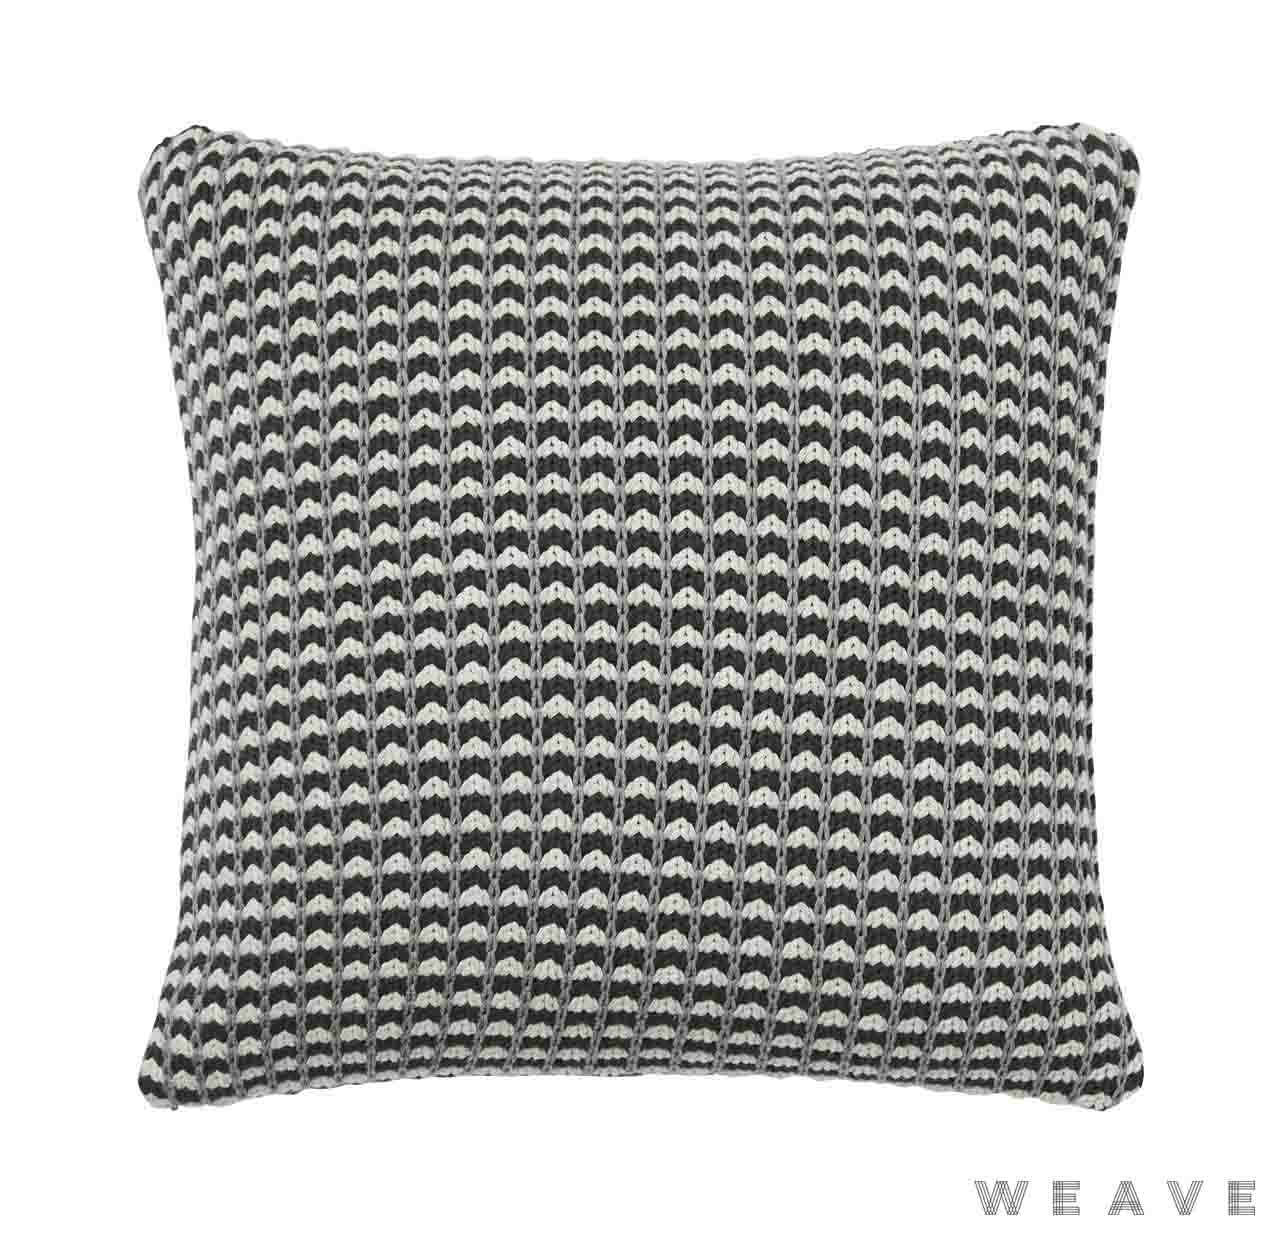 Weave - Sausalito Cushion - Tar (Pack of 2)  | Cusion Fabric - Grey, Black - Charcoal, Geometric, Multi-Coloured, Weave